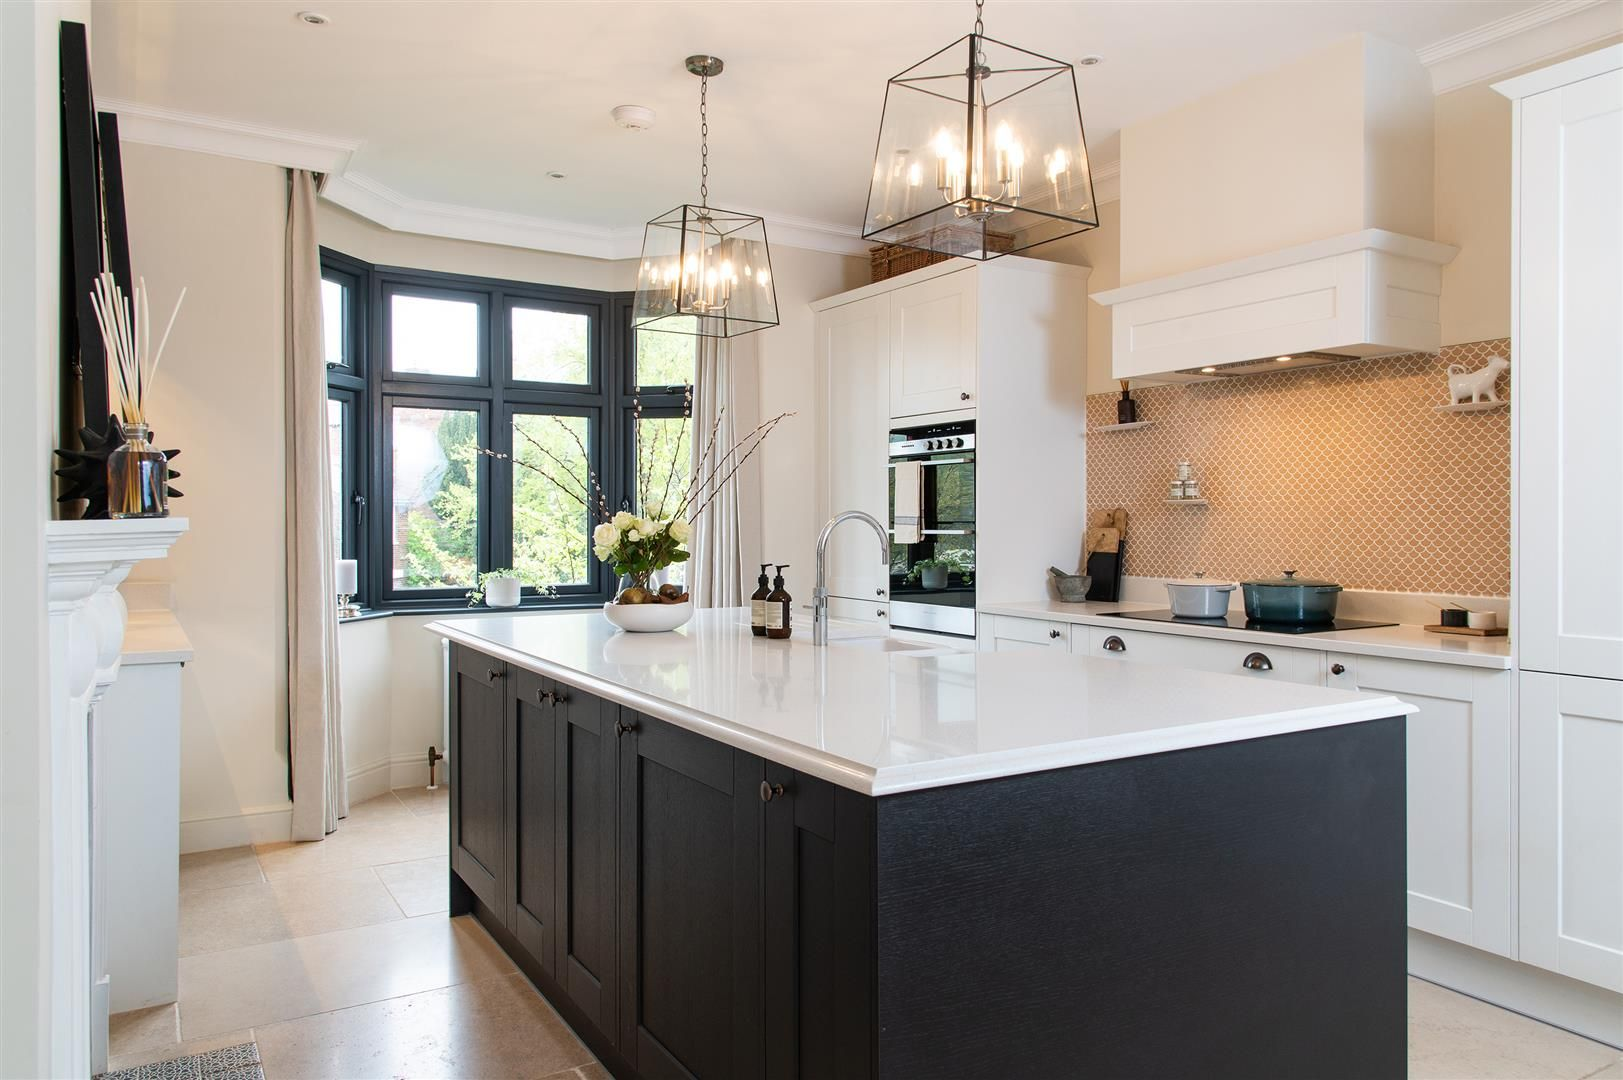 4 bed house for sale in Kinver 7